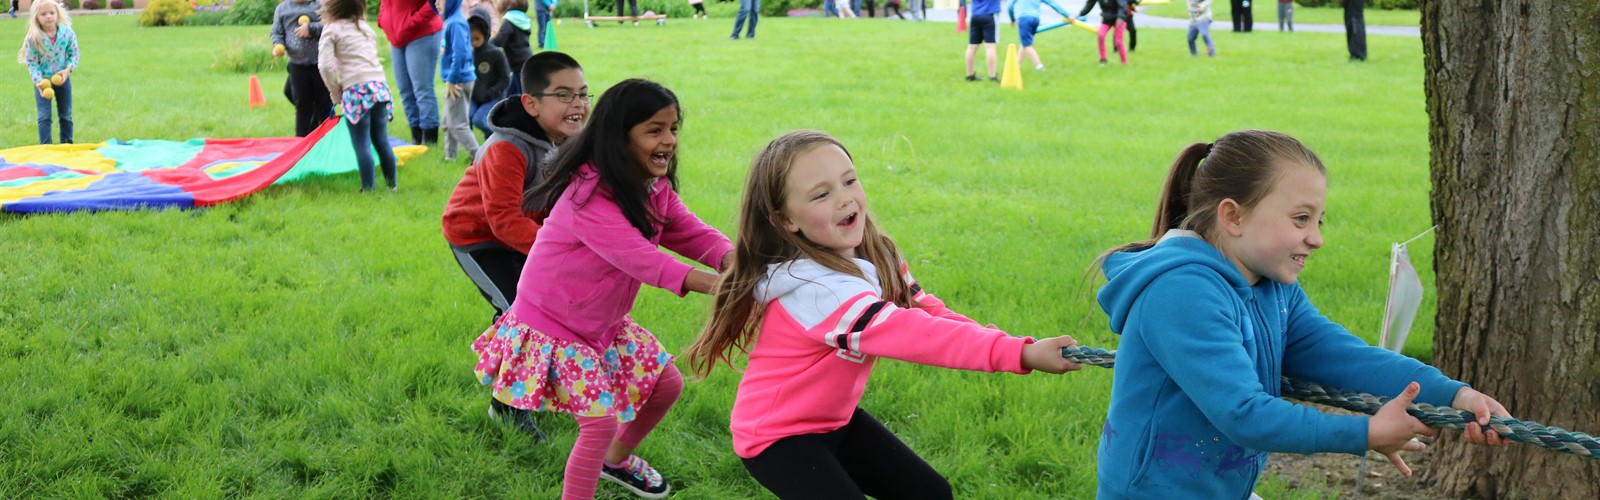 Students playing tug-of-war during field day